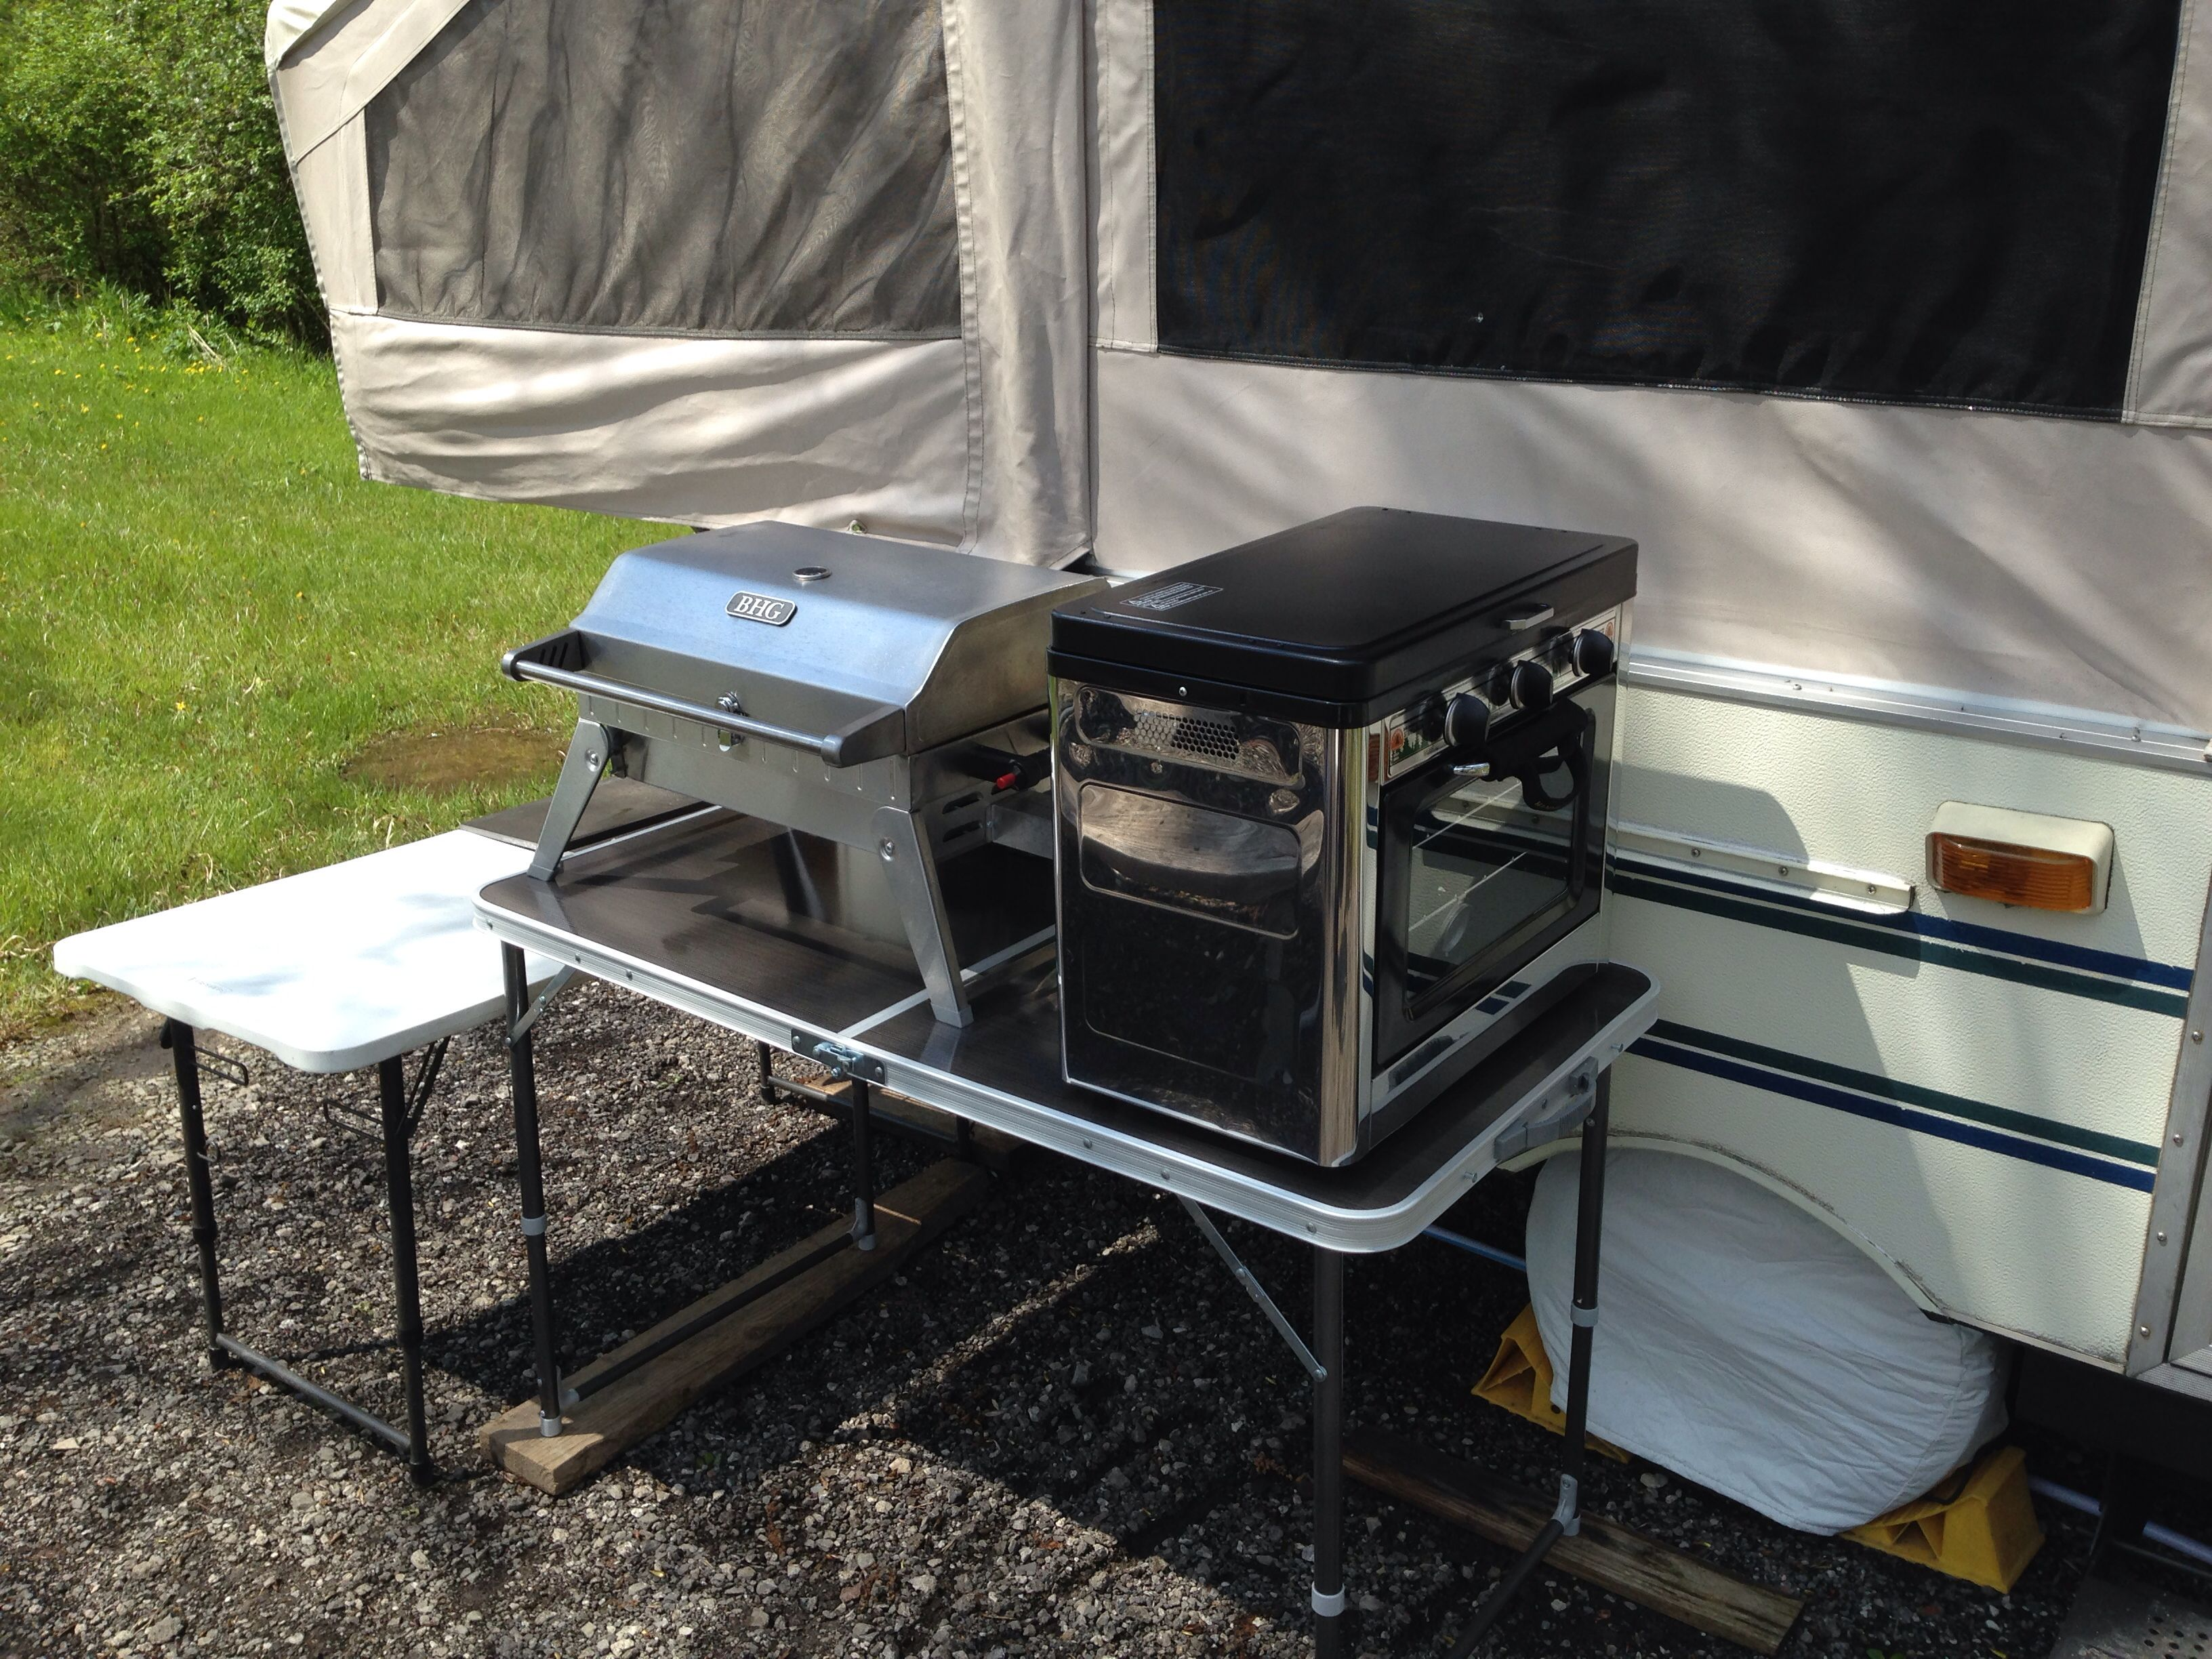 Not a bad setup for a popup outside kitchen. The Grill is $69 from ...